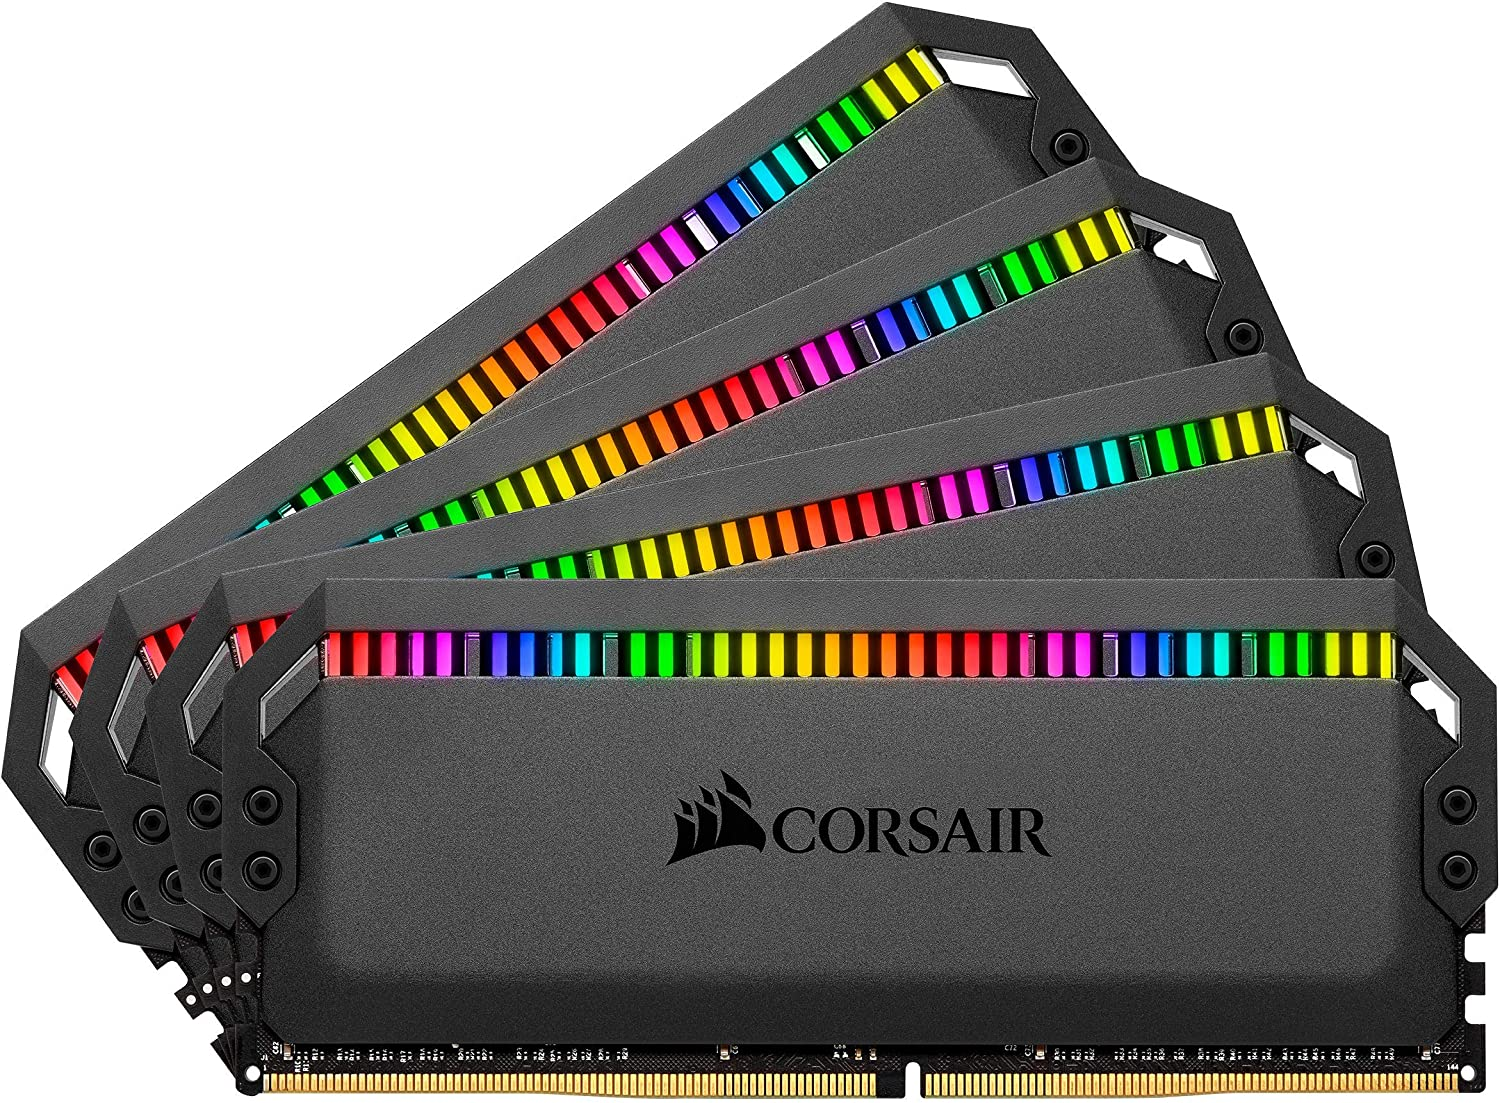 Corsair Dominator Platinum RGB 64GB (4x16GB) DDR4 3600 (PC4-28800) C16 1.35V Desktop Memory - Black